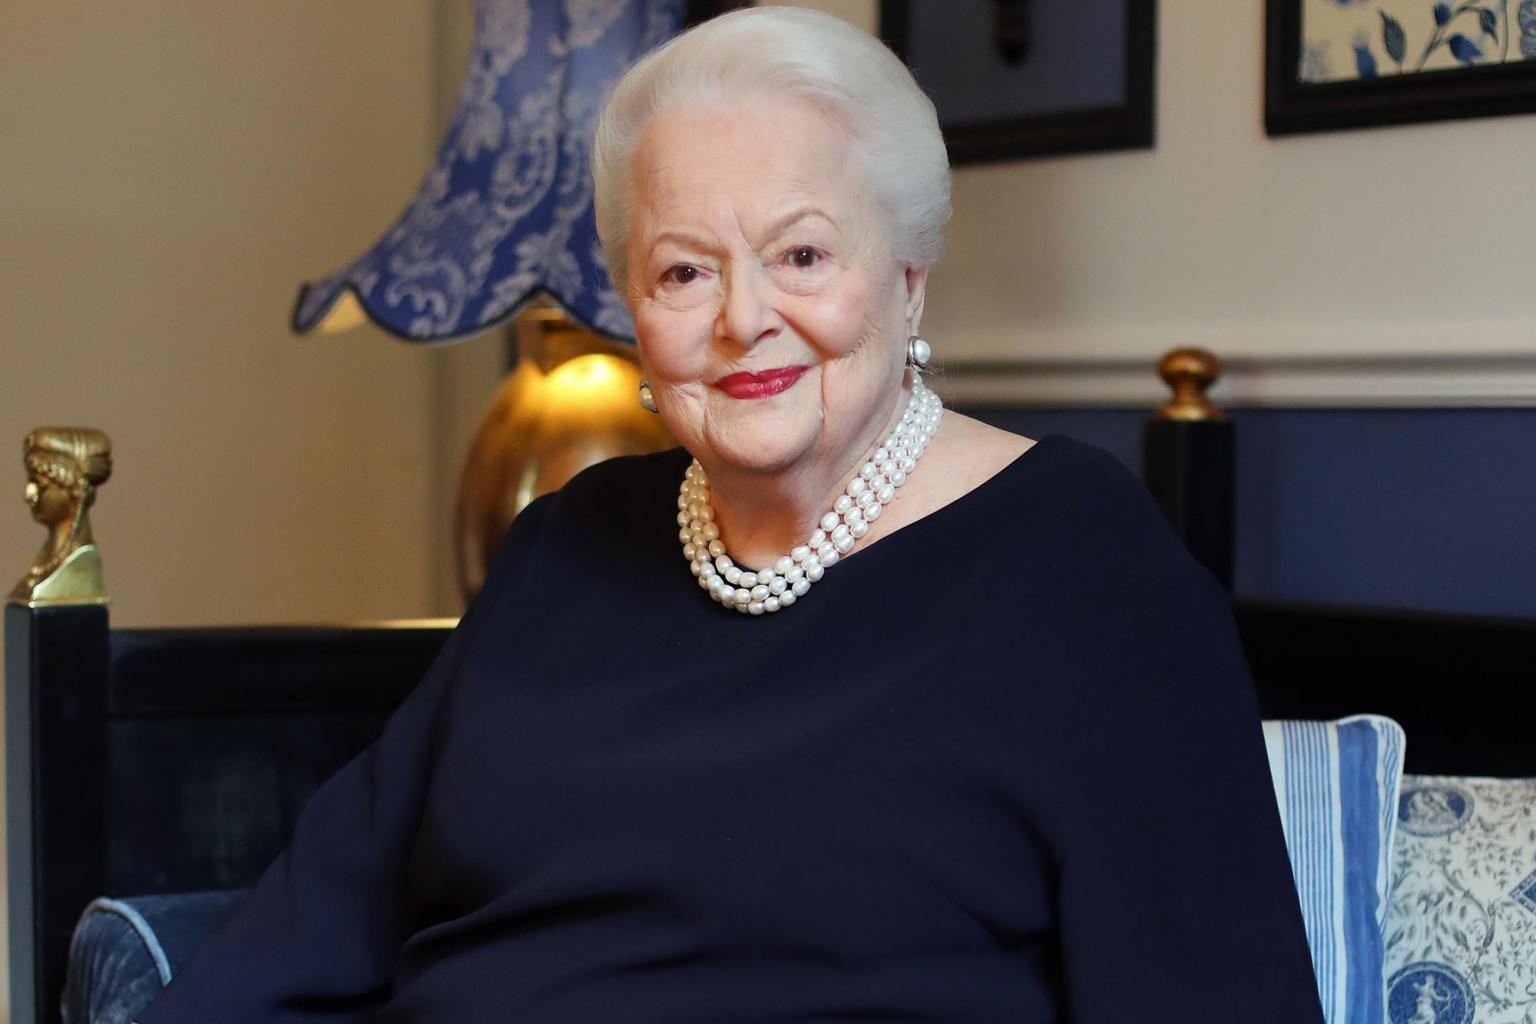 Olivia de Havilland on Becoming the Oldest Person to Be Named a Dame: I       'm        Extremely Proud